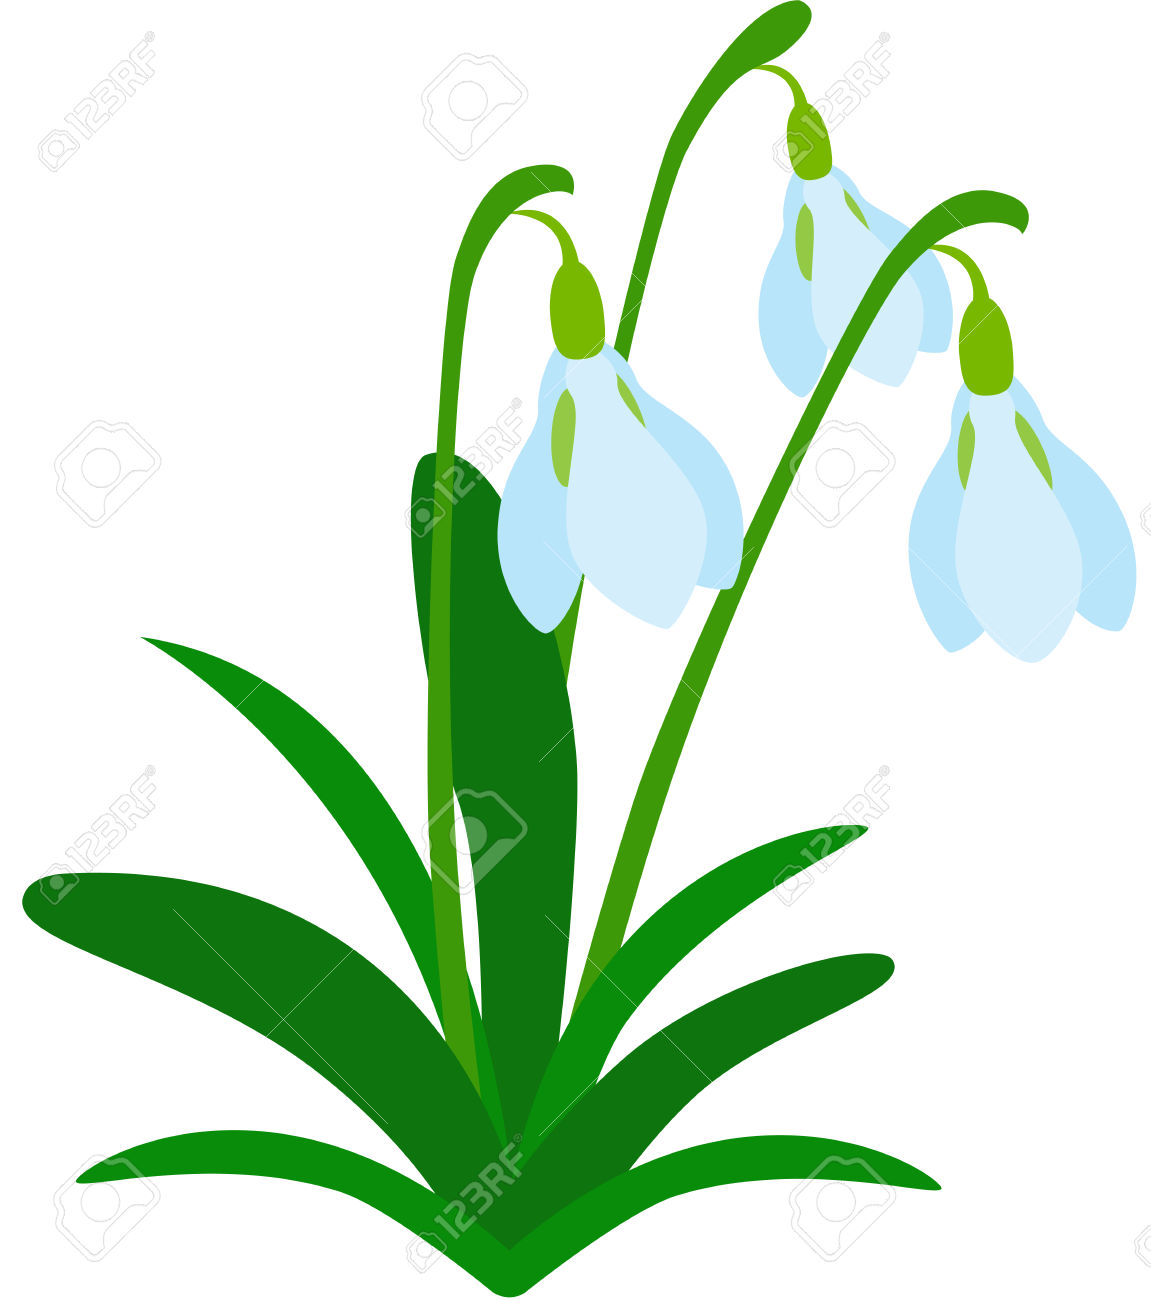 Illustration Of Tree Fresh Snowdrops, Isolated. Royalty Free.